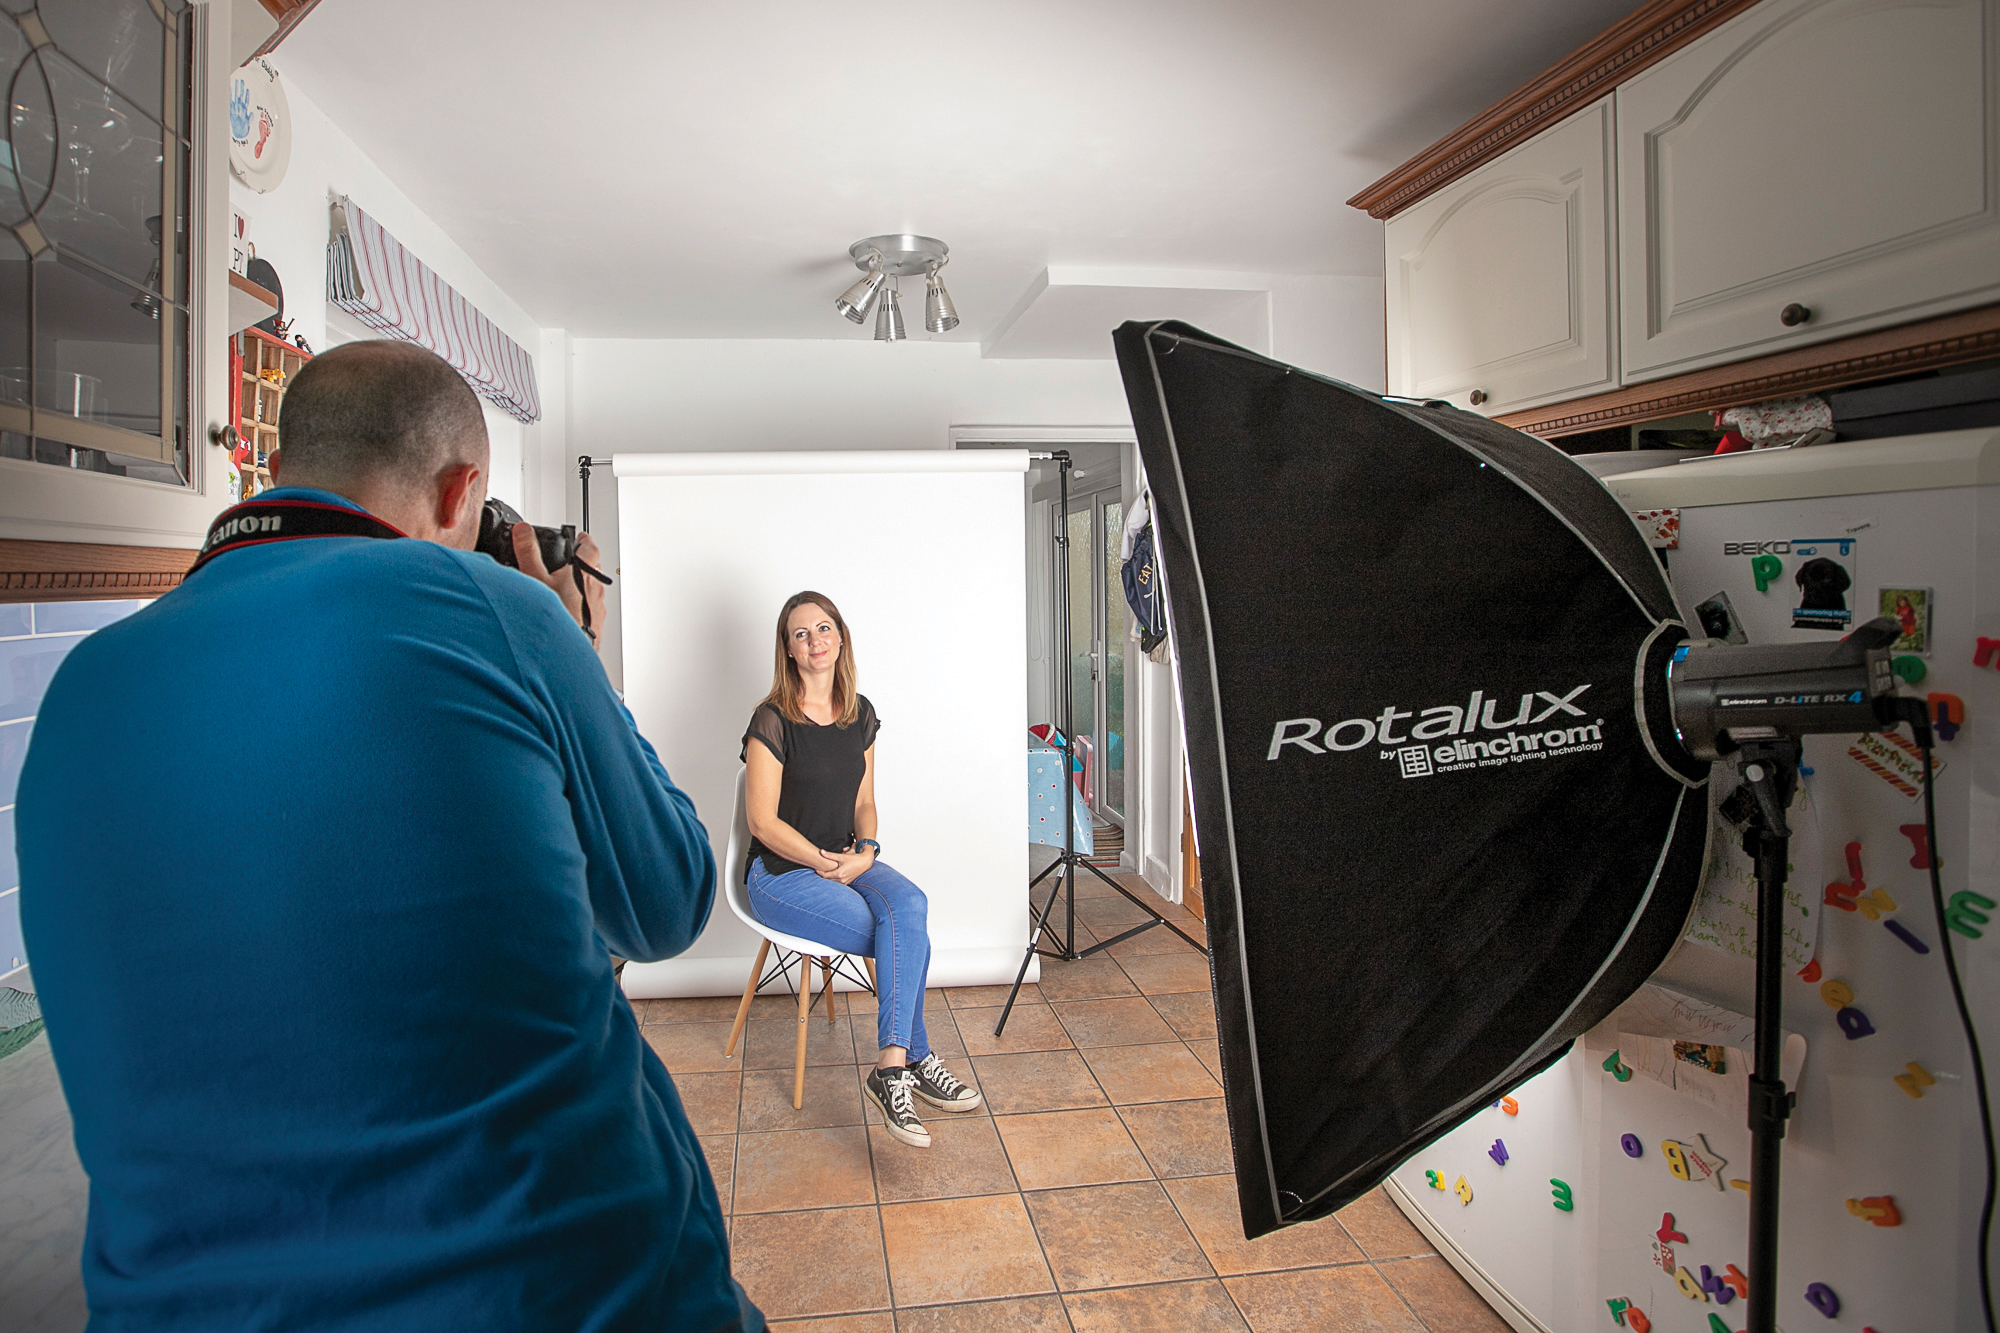 Commercial headshot tips: professional portrait photography with a single light | Digital Camera World